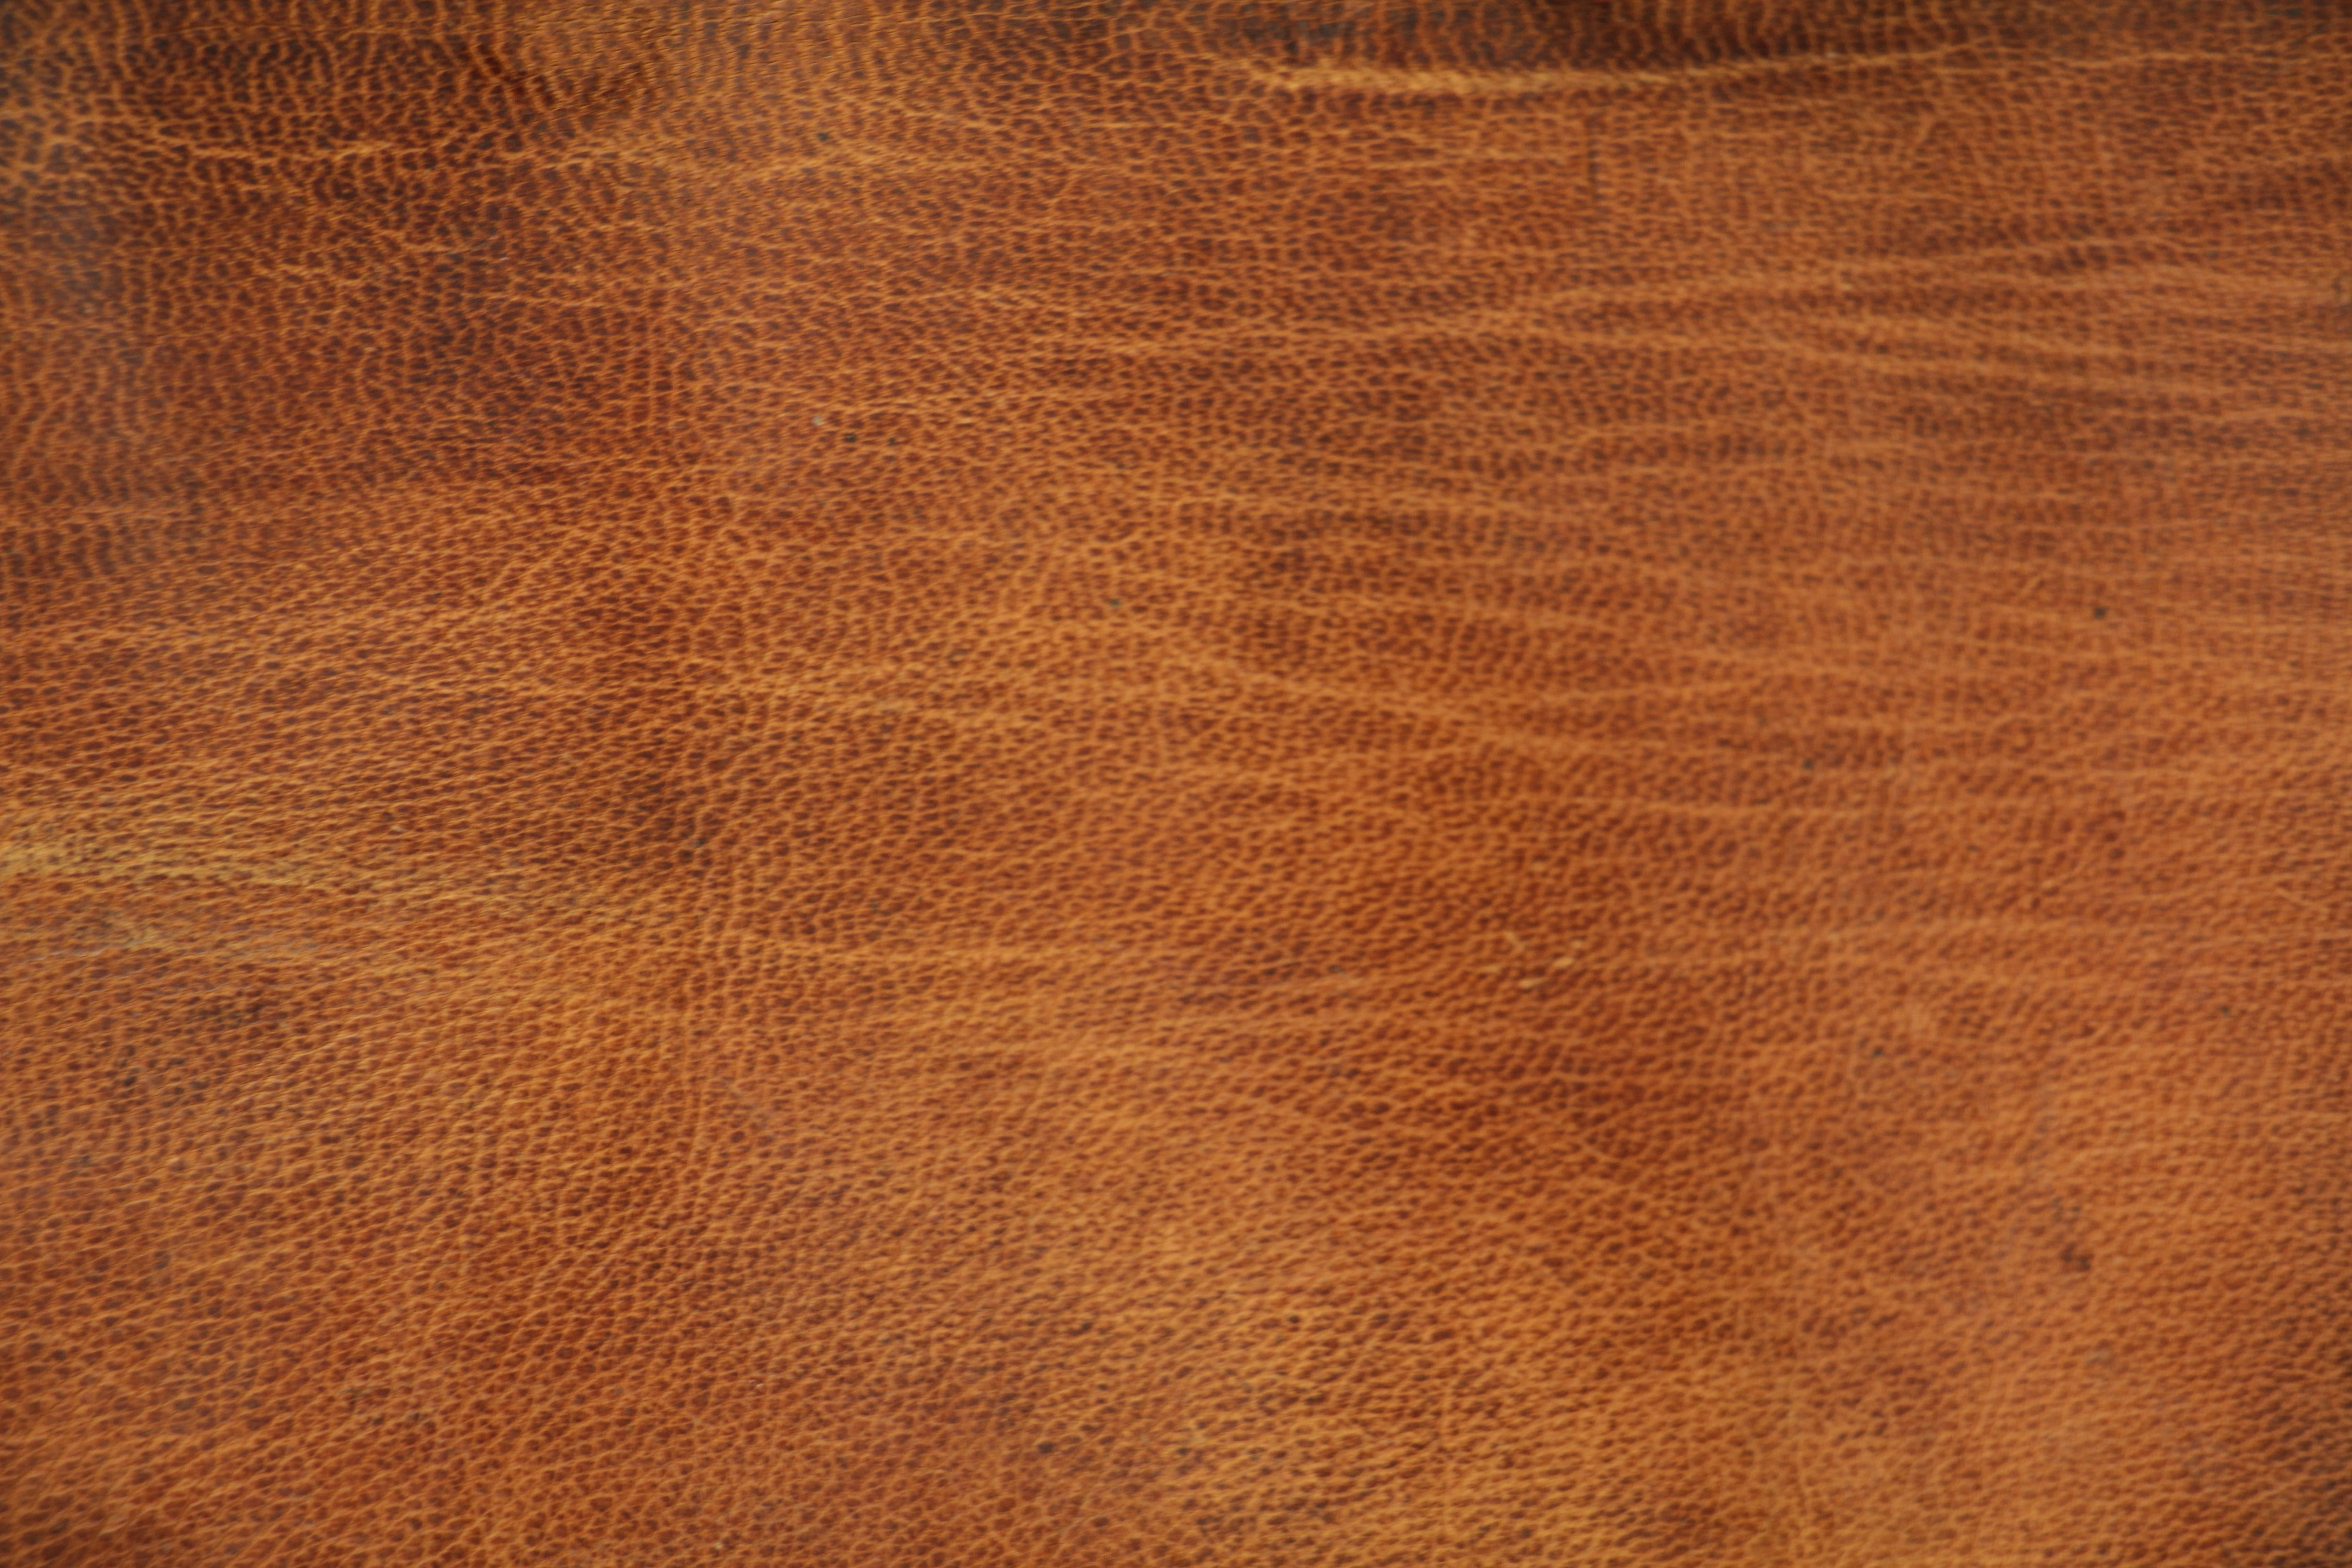 tan leather texture skin wrinkle material fabric background ... for Leather Fabric Textures  70ref